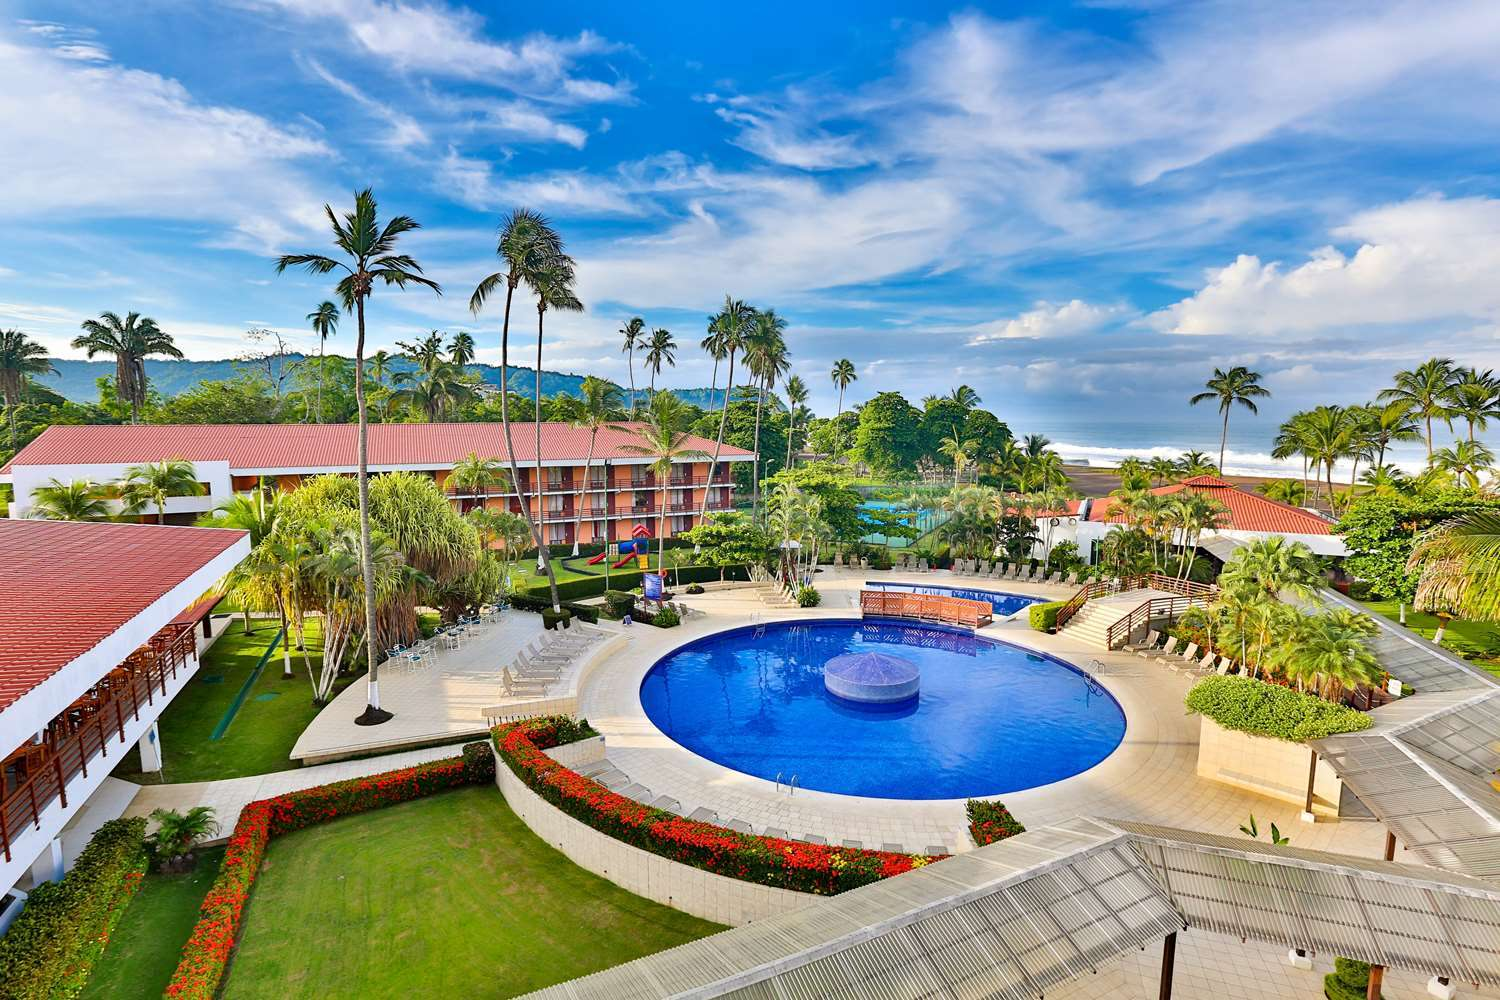 Jaco Beach Costa Rica Hotel For A Comfortable Stay In The Central